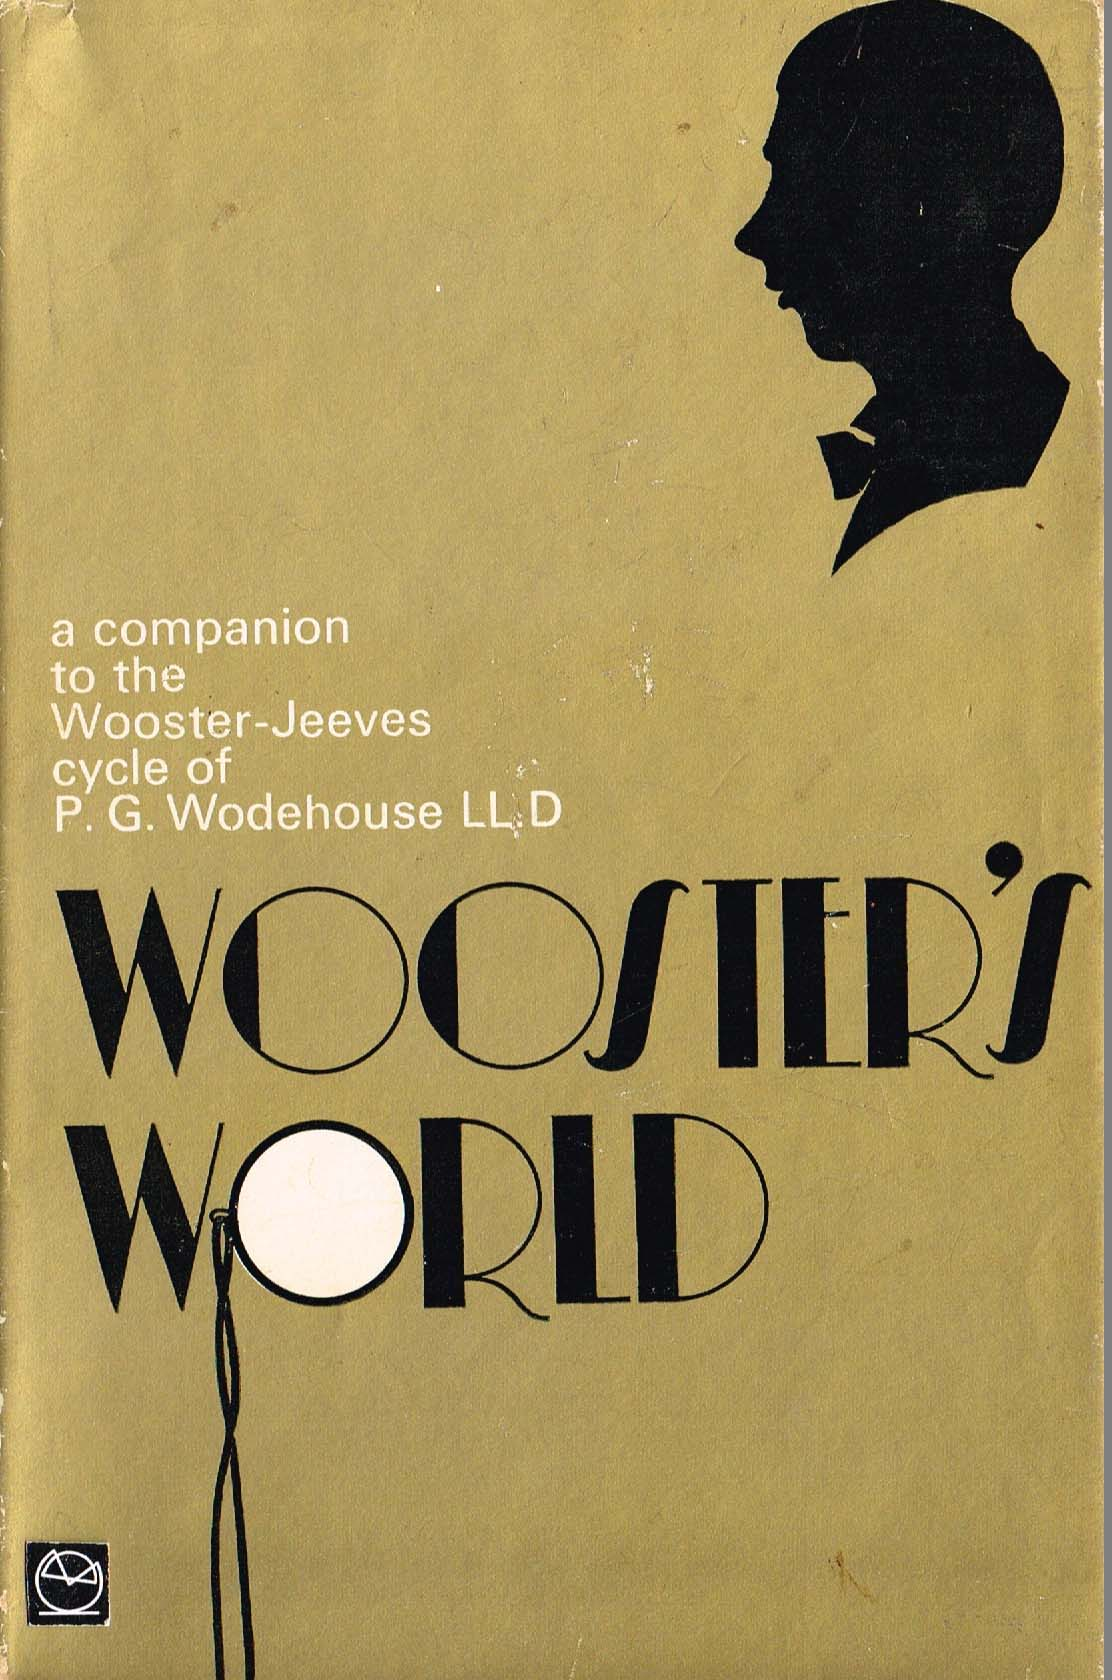 P G Wodehouse Woosters World